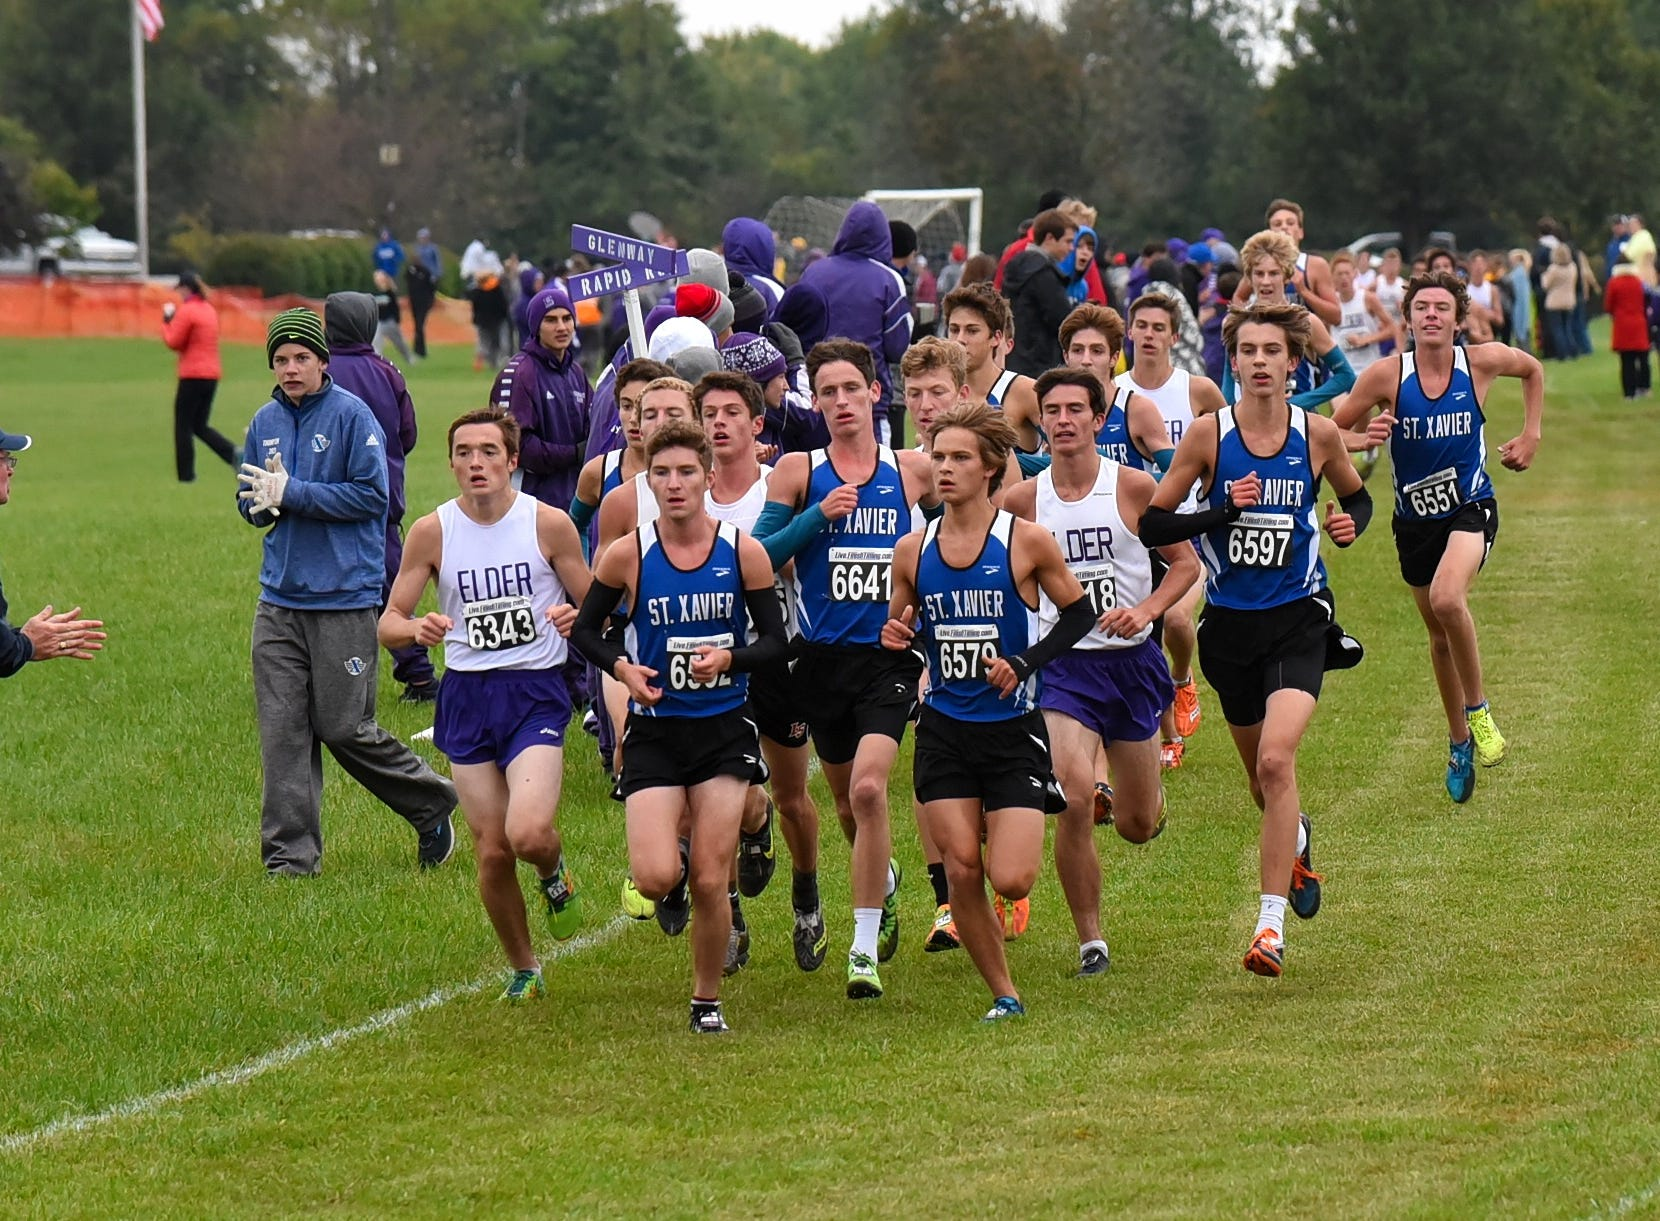 Runners from St. Xavier and Elder lead the GCL pack heading out of the backstretch at the 2018 GCL/GGCL Cross Country Championships, October 13, 2018.